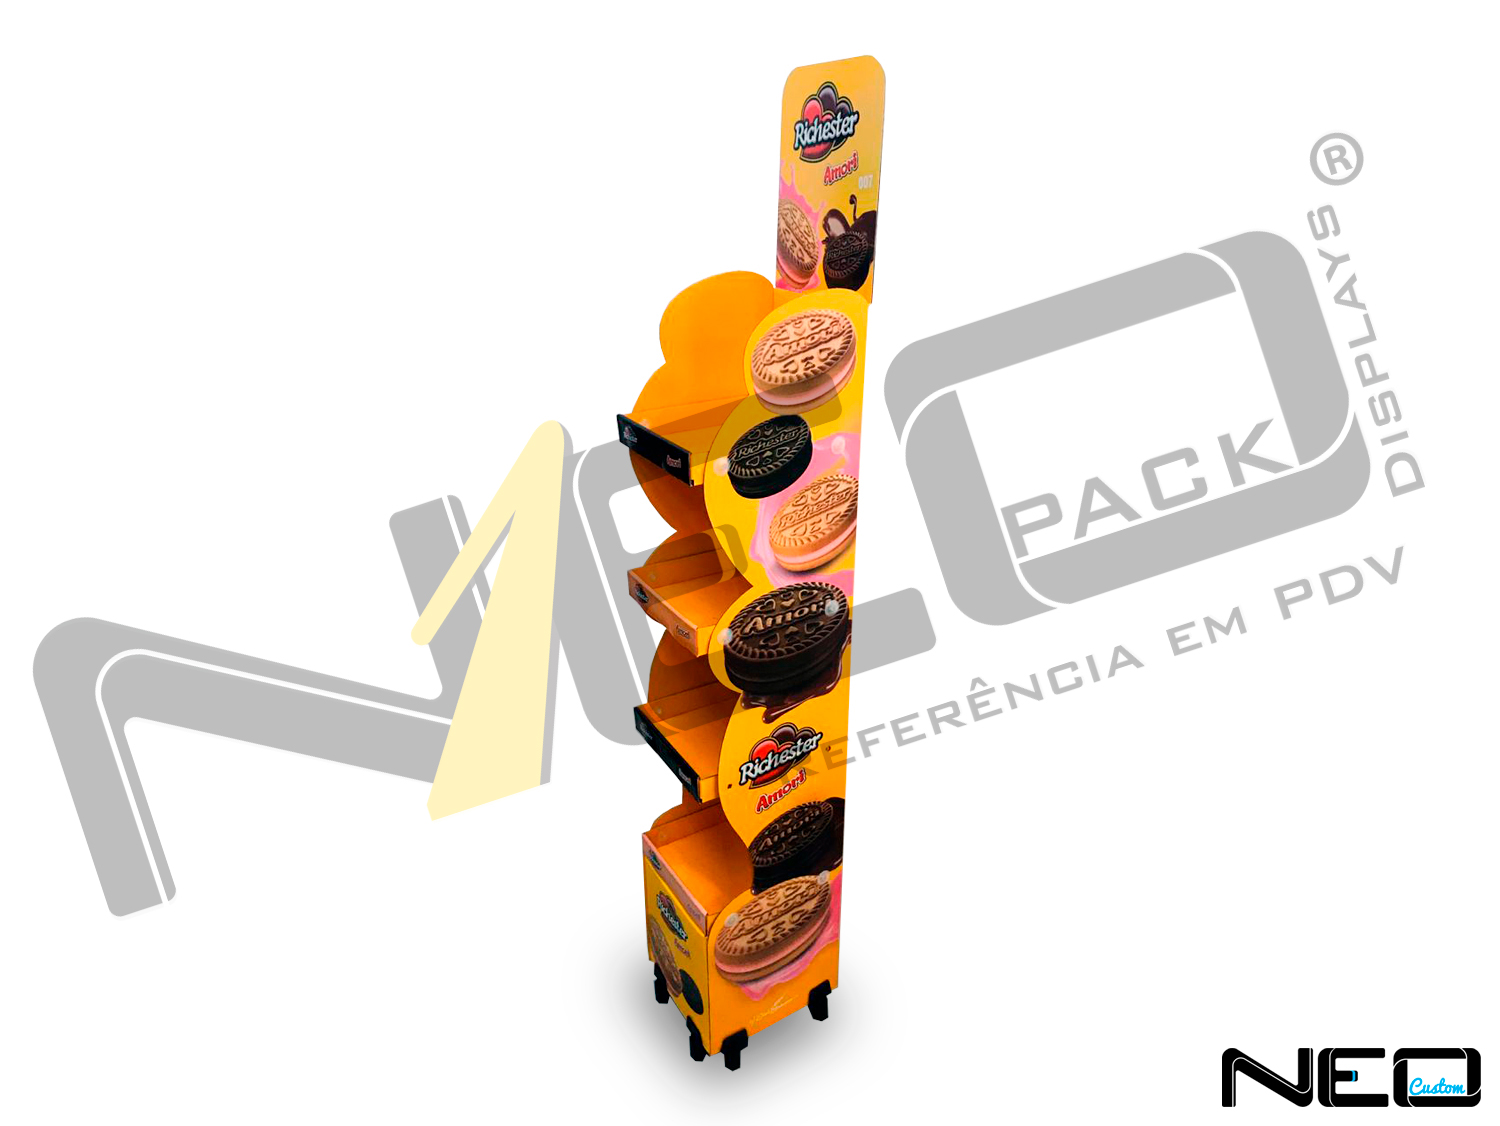 display de papelão expositor site_neopack_display_dechao_richester